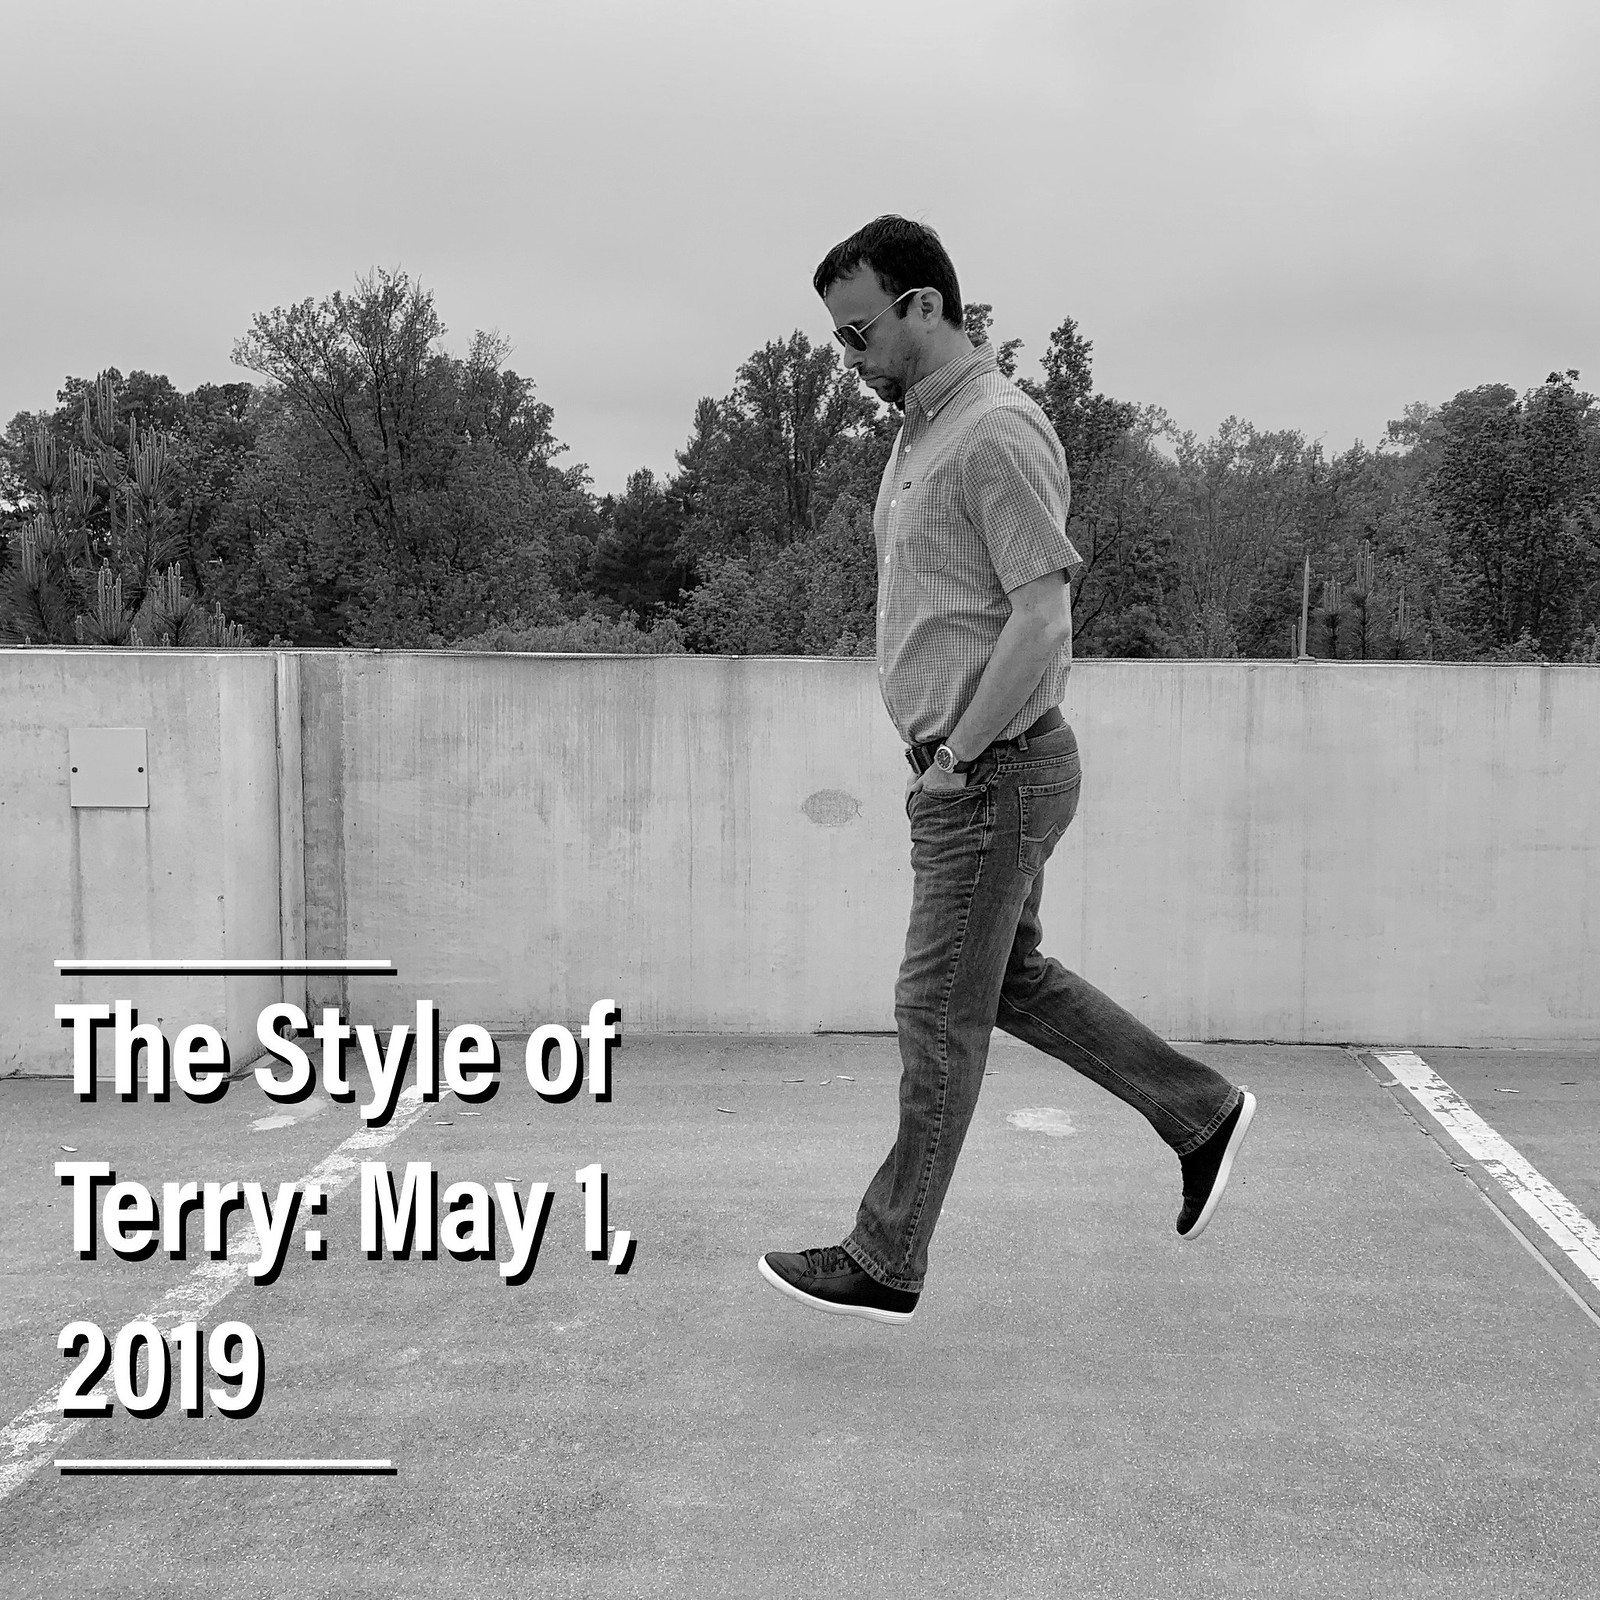 The Style of Terry: 5.1.19